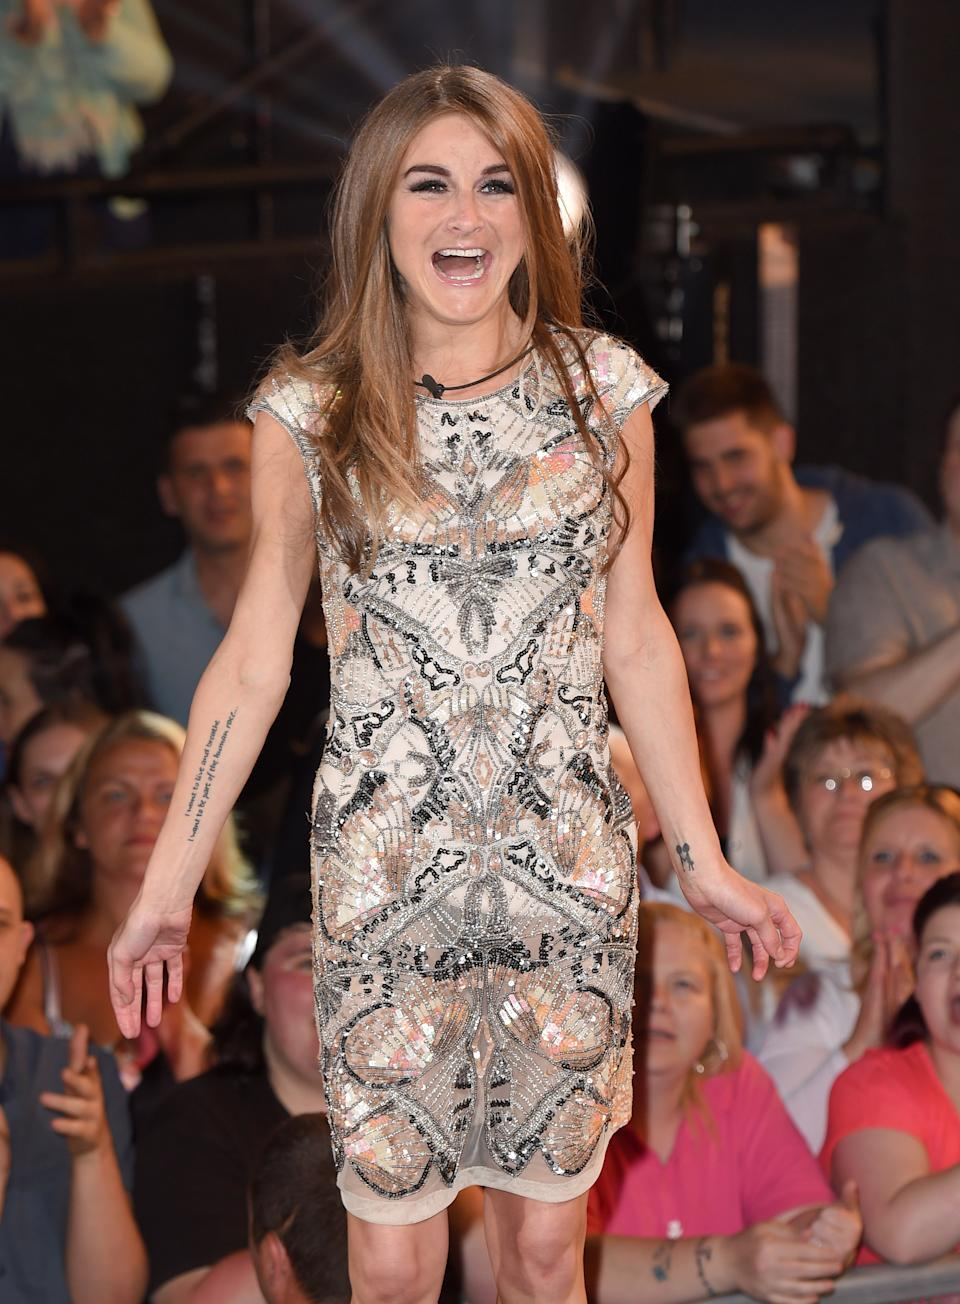 BOREHAMWOOD, ENGLAND - JUNE 12:  Nikki Grahame enters the Big brother house at Elstree Studios on June 12, 2015 in Borehamwood, England.  (Photo by Karwai Tang/WireImage)